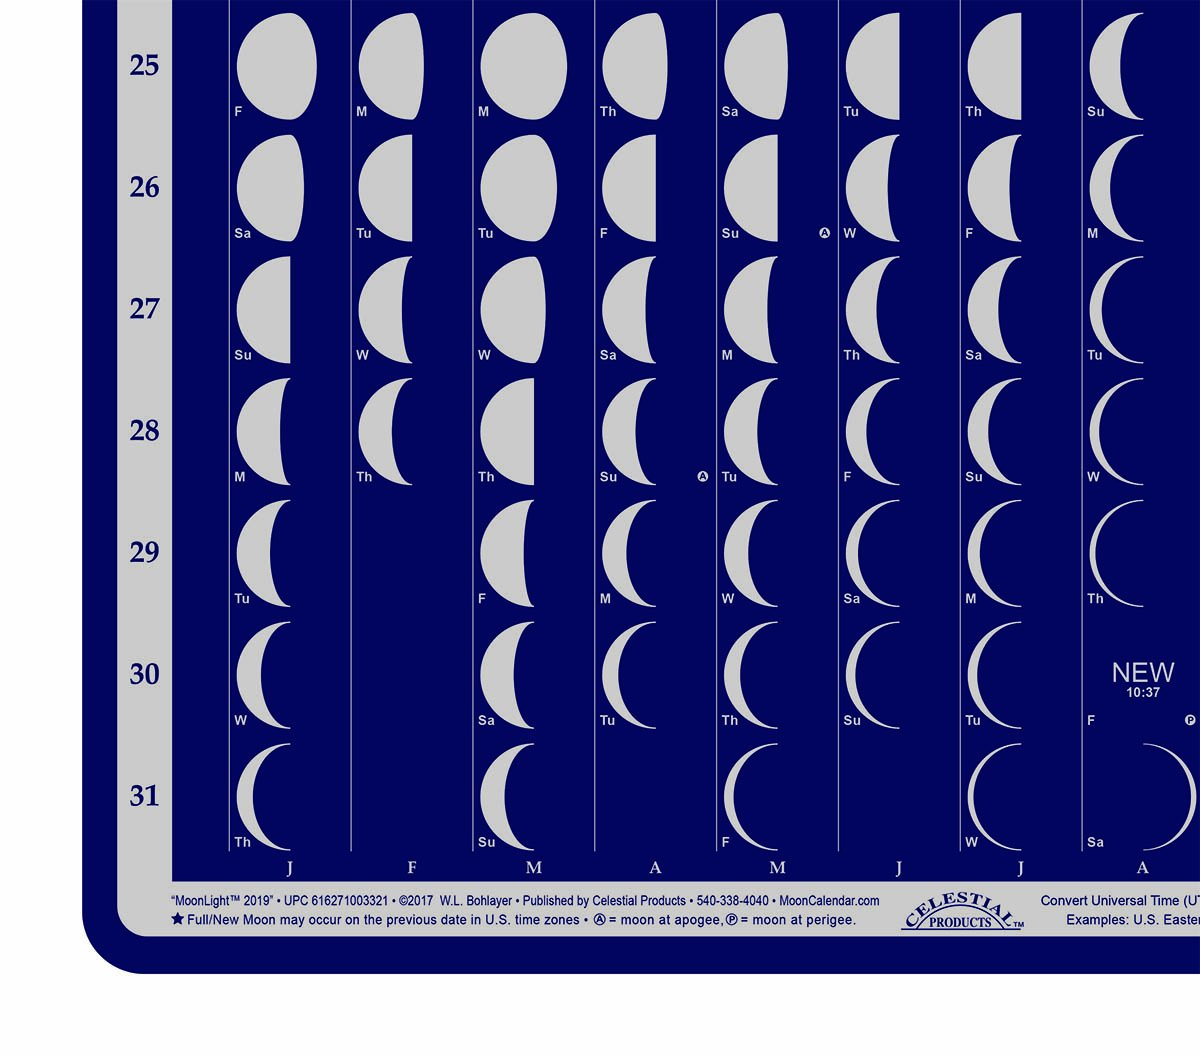 Celestial Products Moon Calendar 2019 Lunar Phases, Moonlight